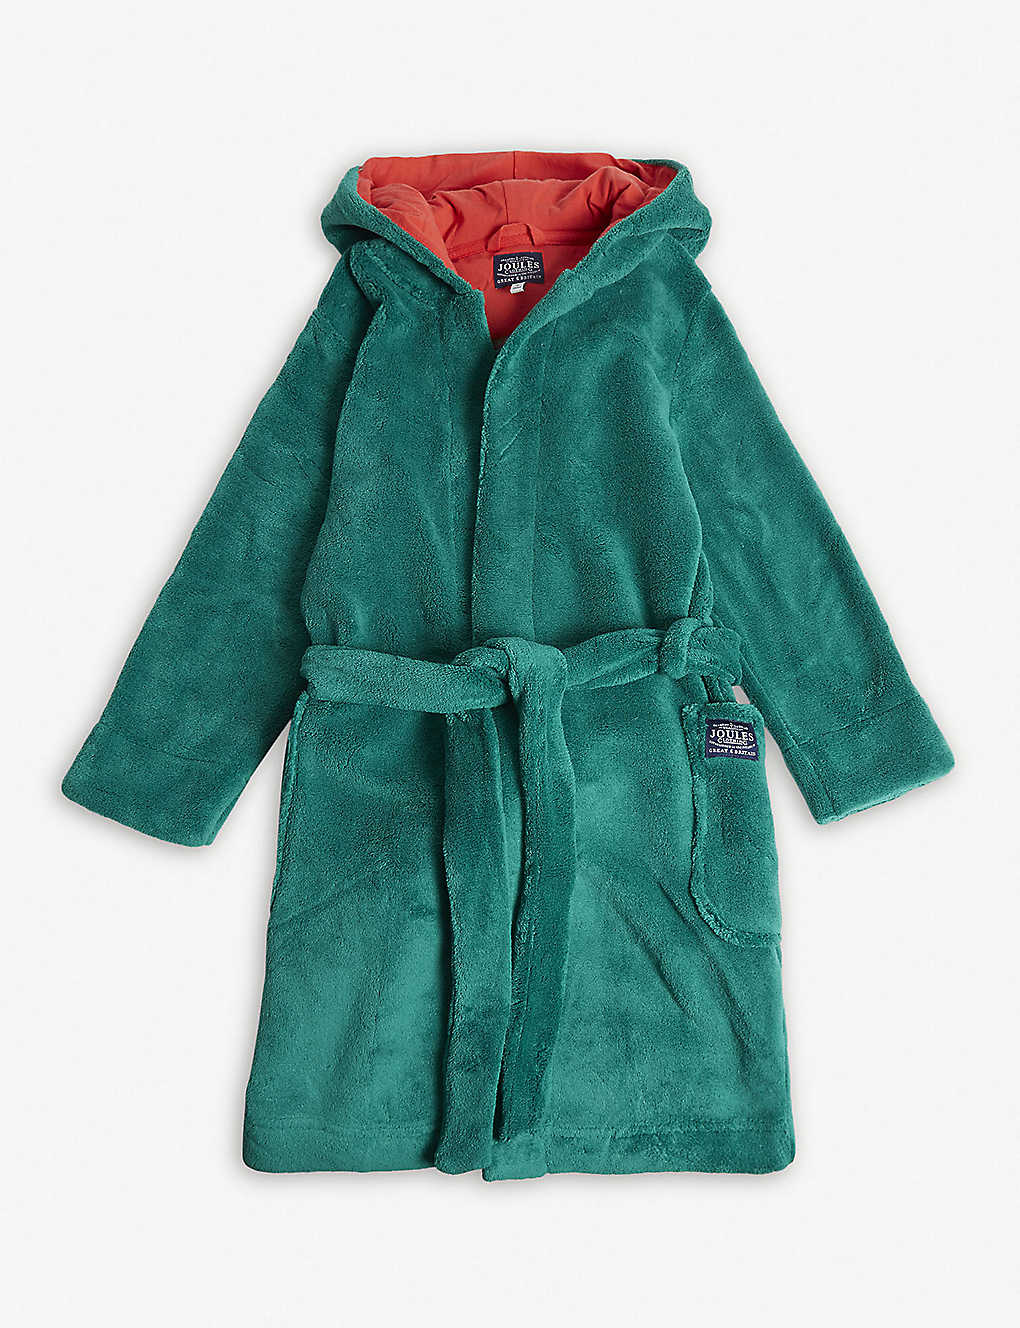 8d439d6c72e6 JOULES - Dinosaur hooded dressing gown 5-8 years